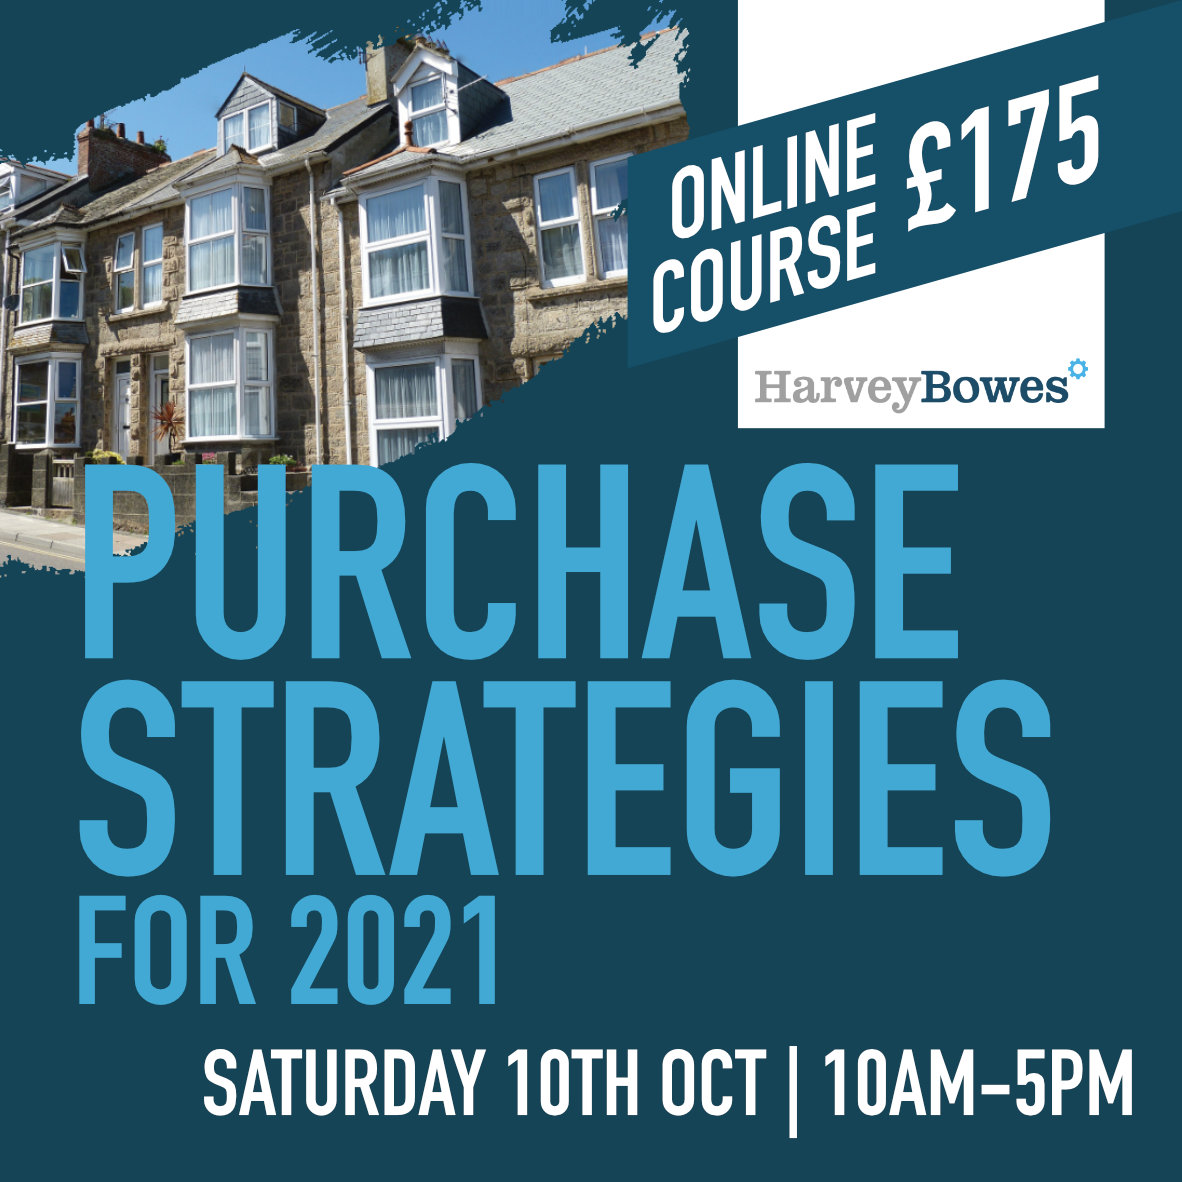 Purchase Strategies for 2021 Online Course - 10th oct